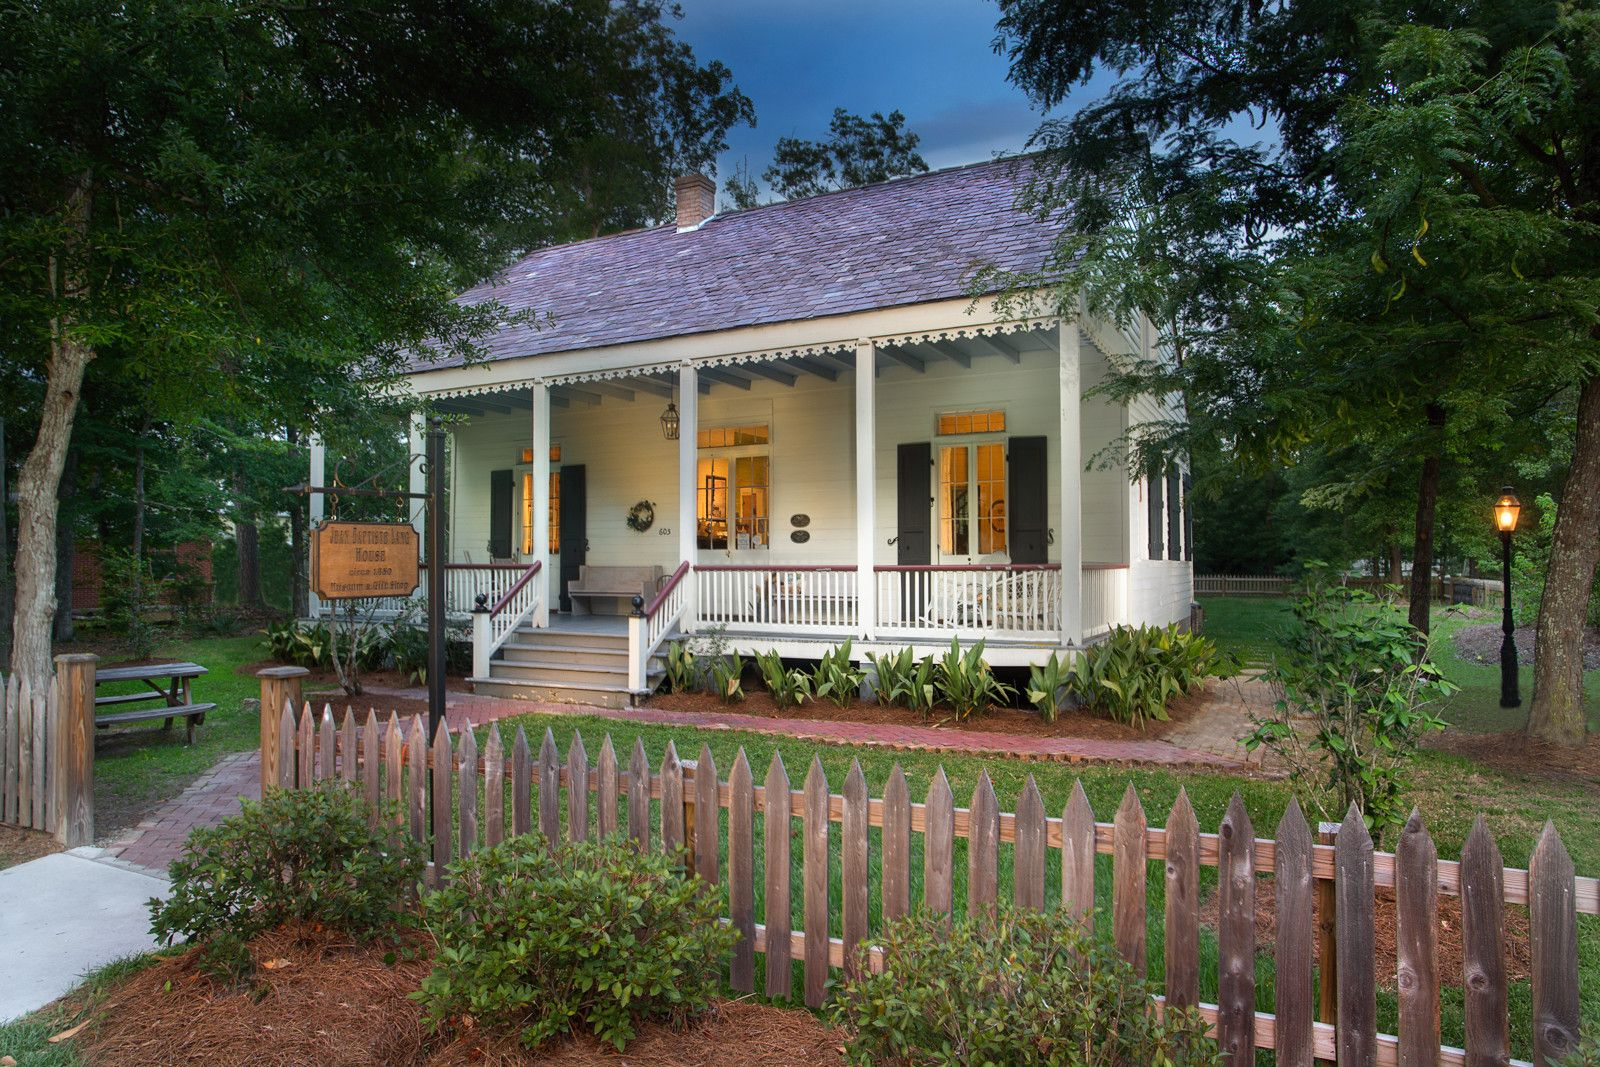 creole house plans with porches. omha  Lang House Creole cottage Pinterest and